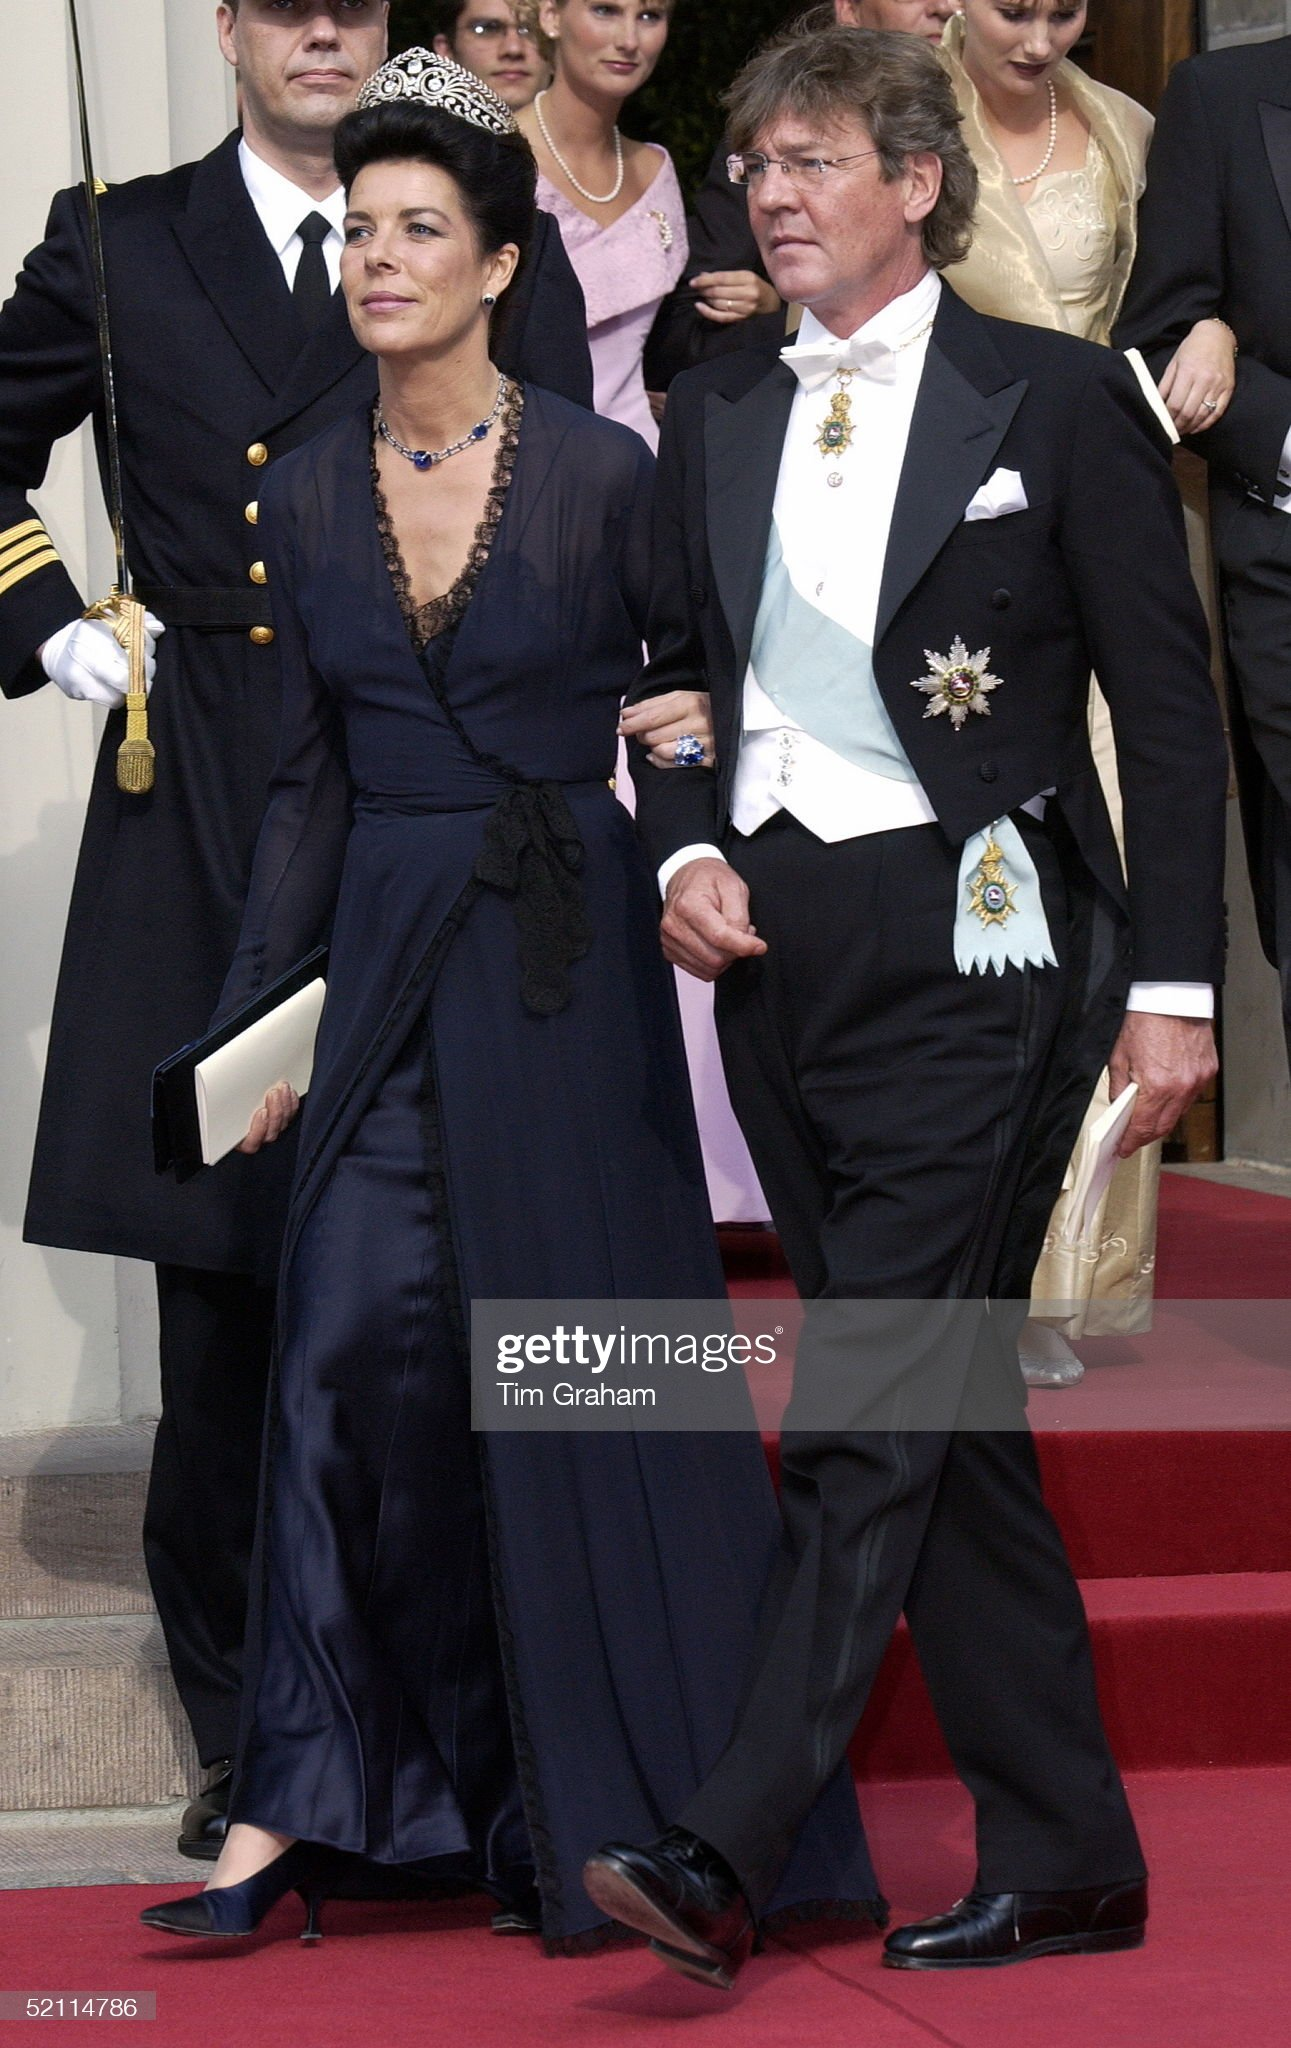 Ernst And Caroline Of Hanover : News Photo